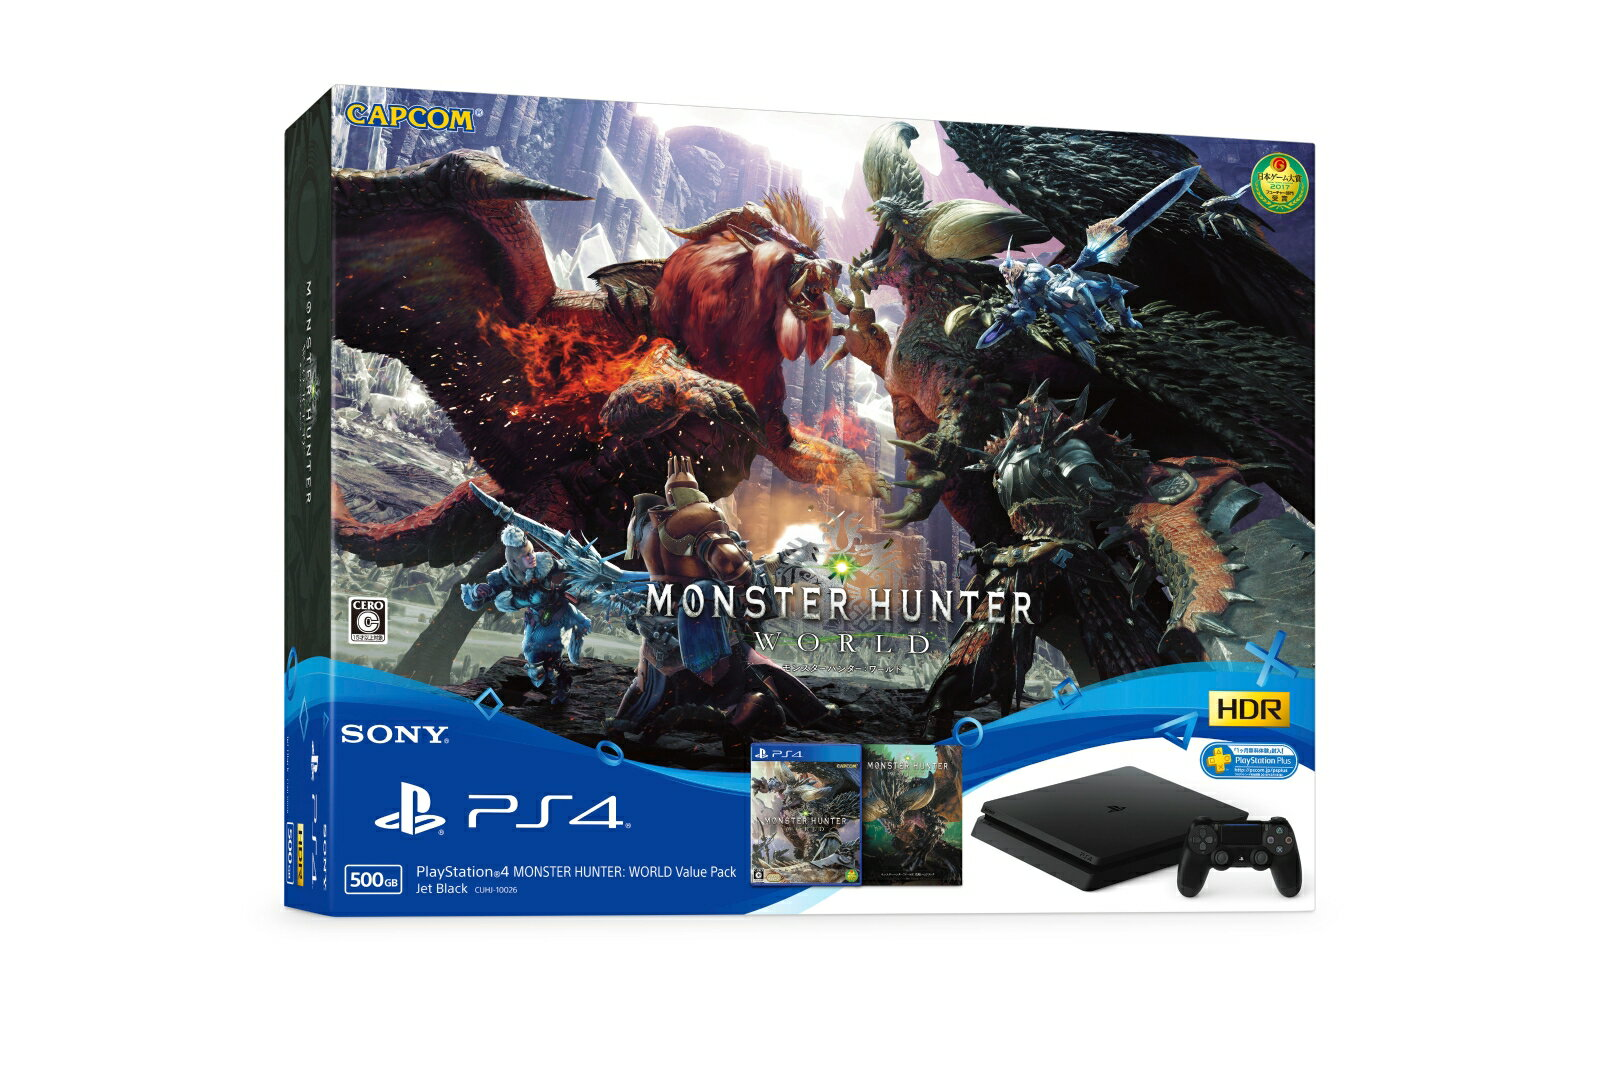 PlayStation4 MONSTER HUNTER: WORLD Value Pack